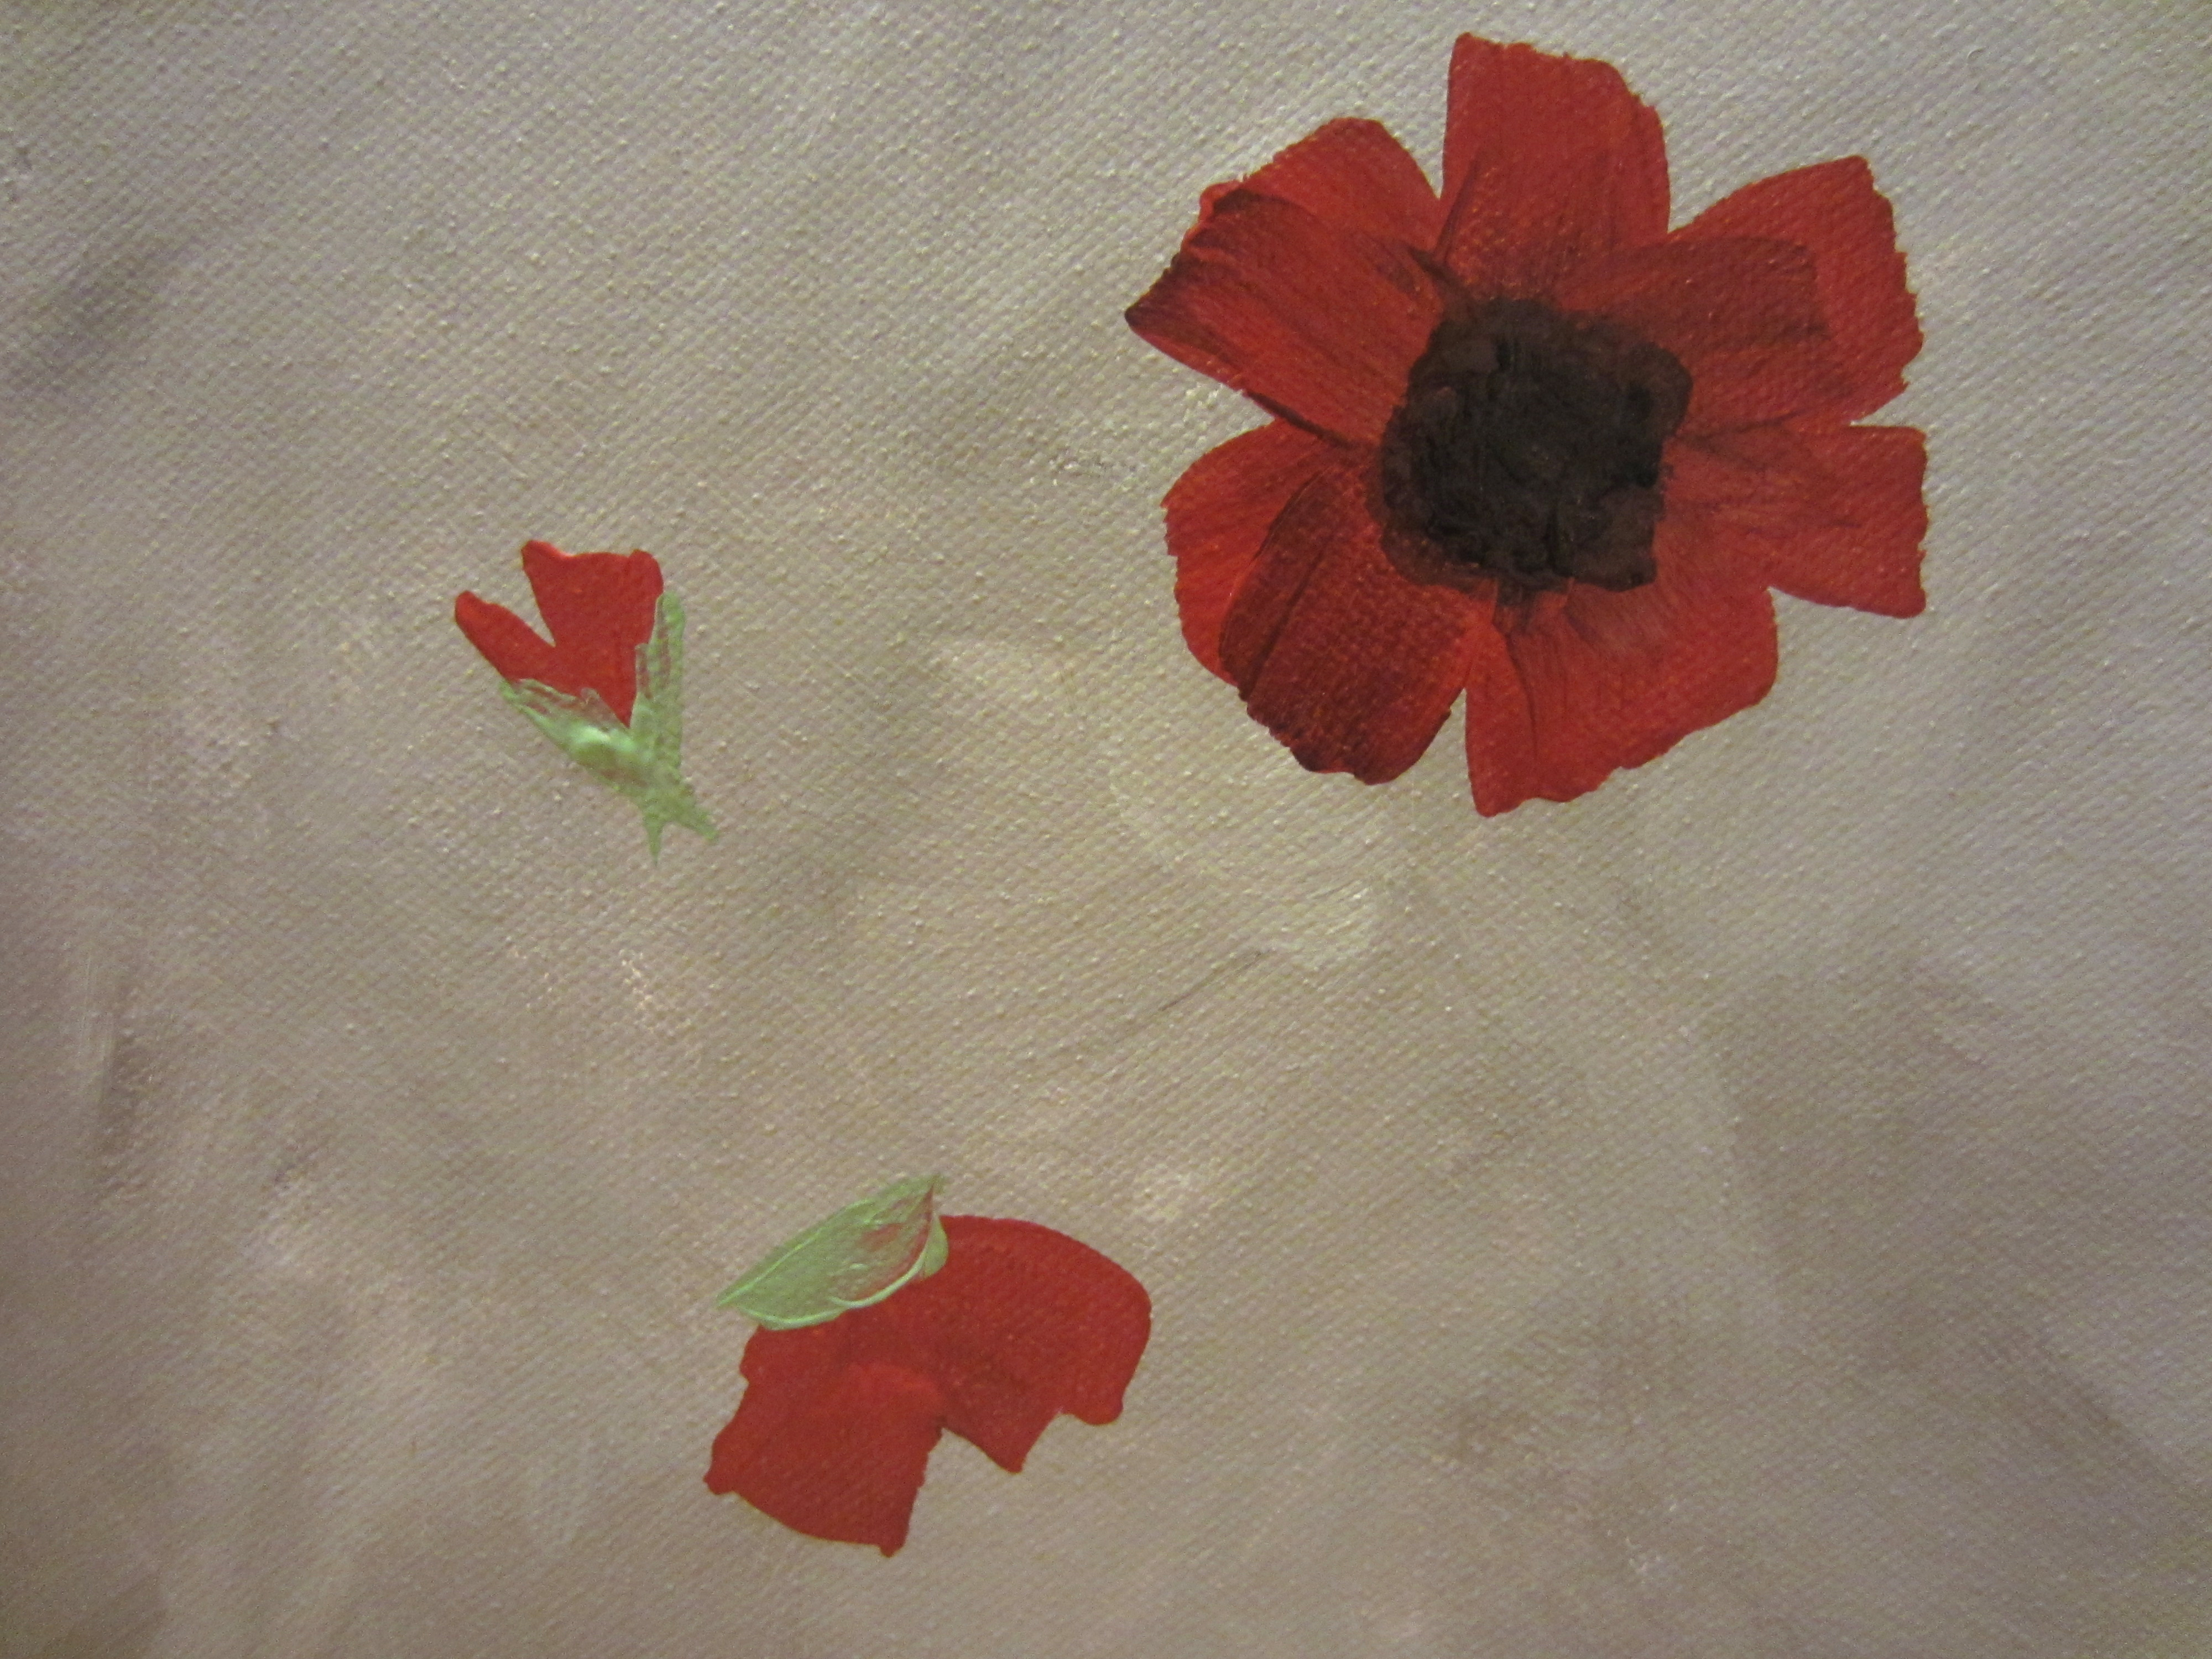 How To Paint Poppies Part Three The Stems And Paper Plane